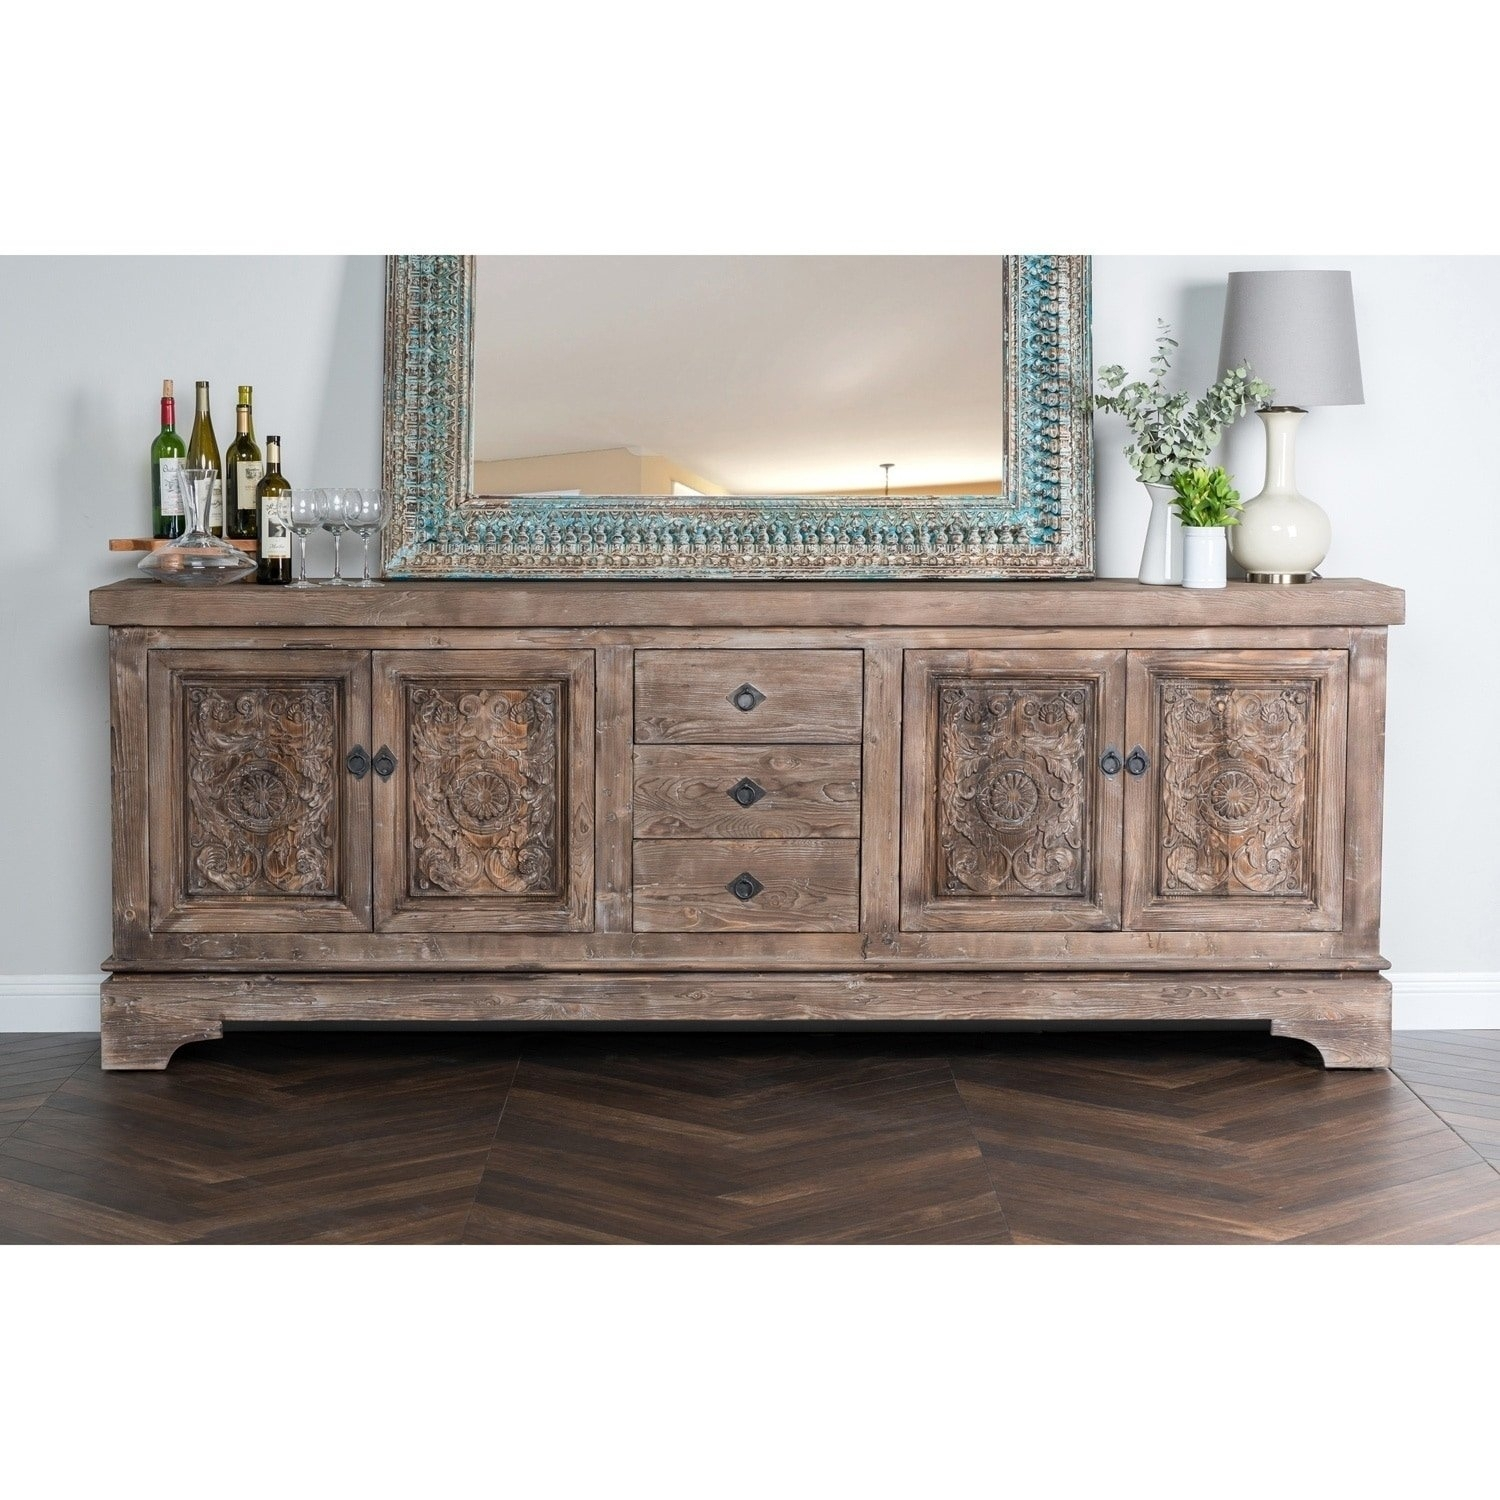 Shop Allen Rustic Taupe Reclaimed Pine 106-Inch Sideboardkosas within Reclaimed Pine & Iron 72 Inch Sideboards (Image 24 of 30)